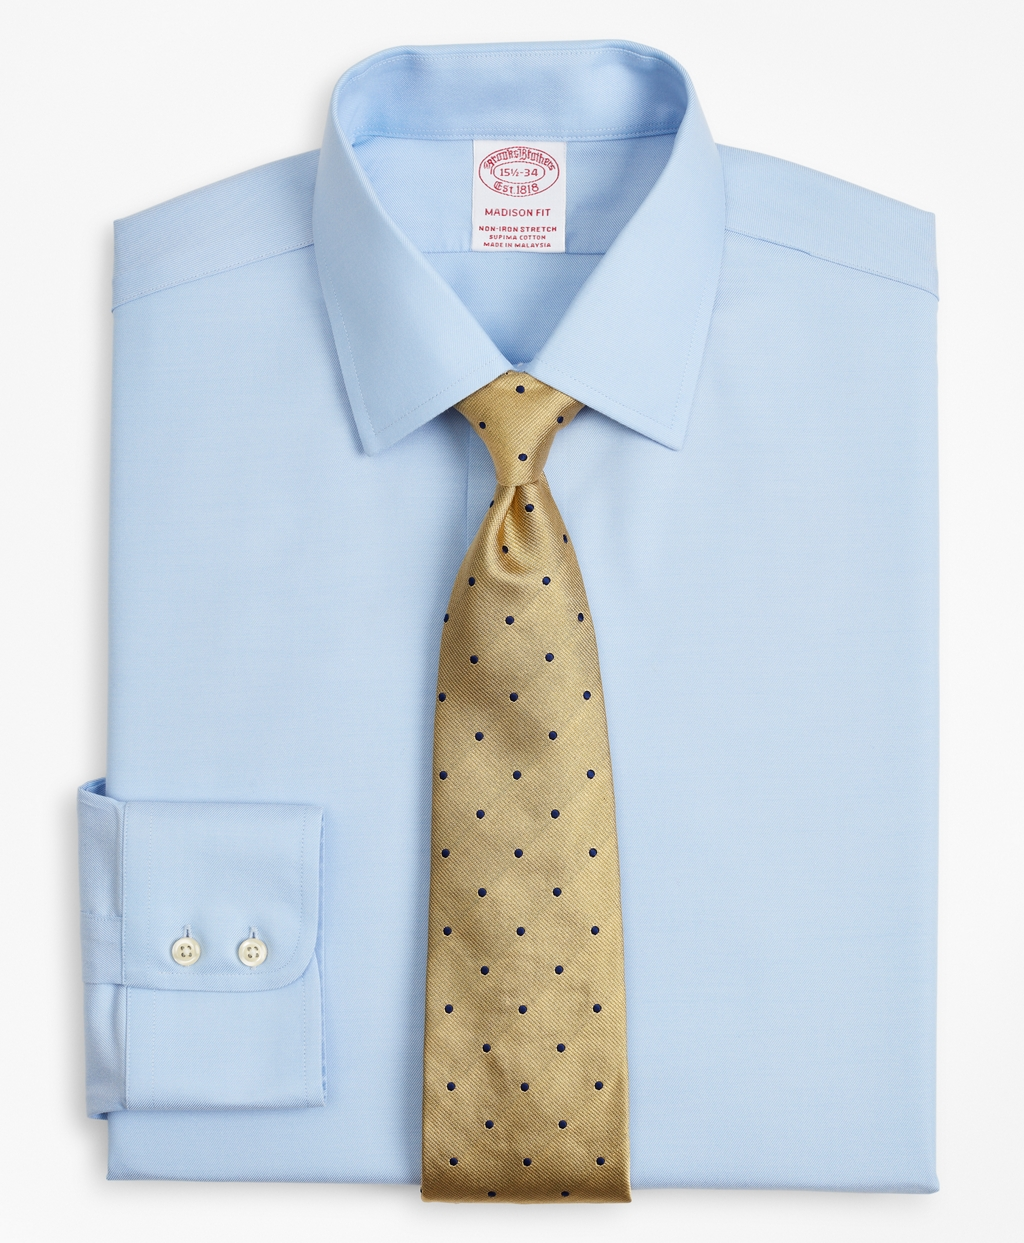 Brooksbrothers Stretch Madison Relaxed-Fit Dress Shirt, Non-Iron Twill Ainsley Collar